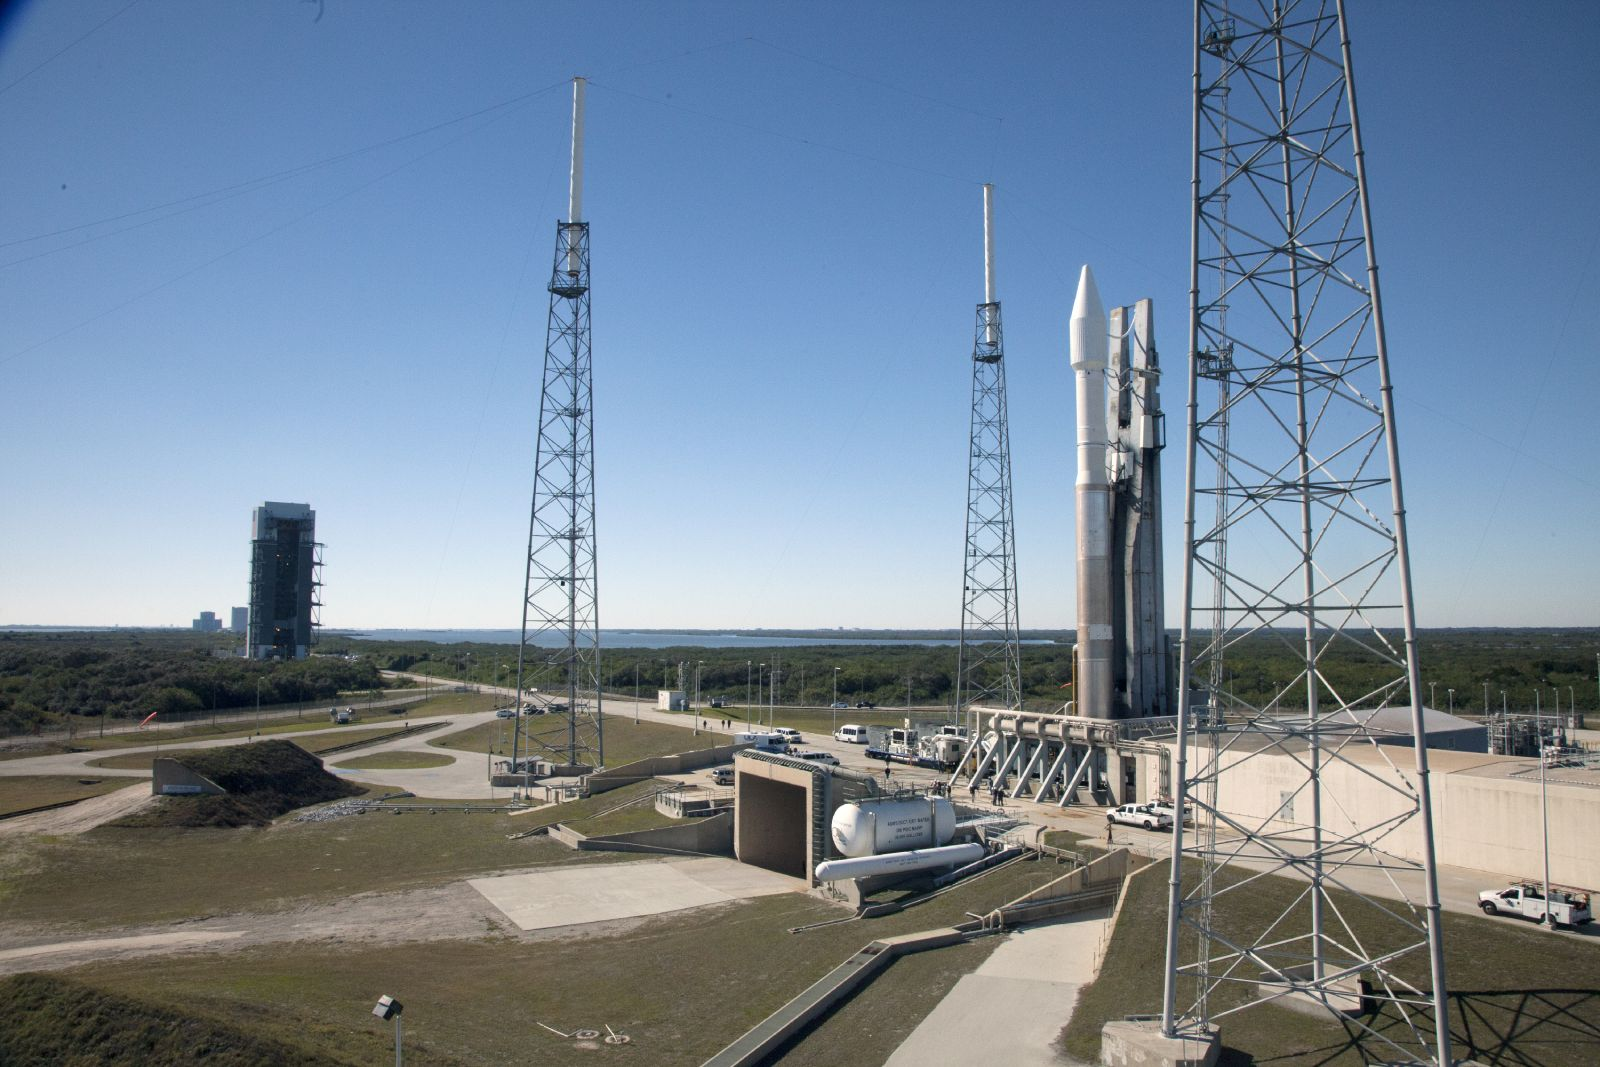 Atlas V rocket at Launch Complex 41